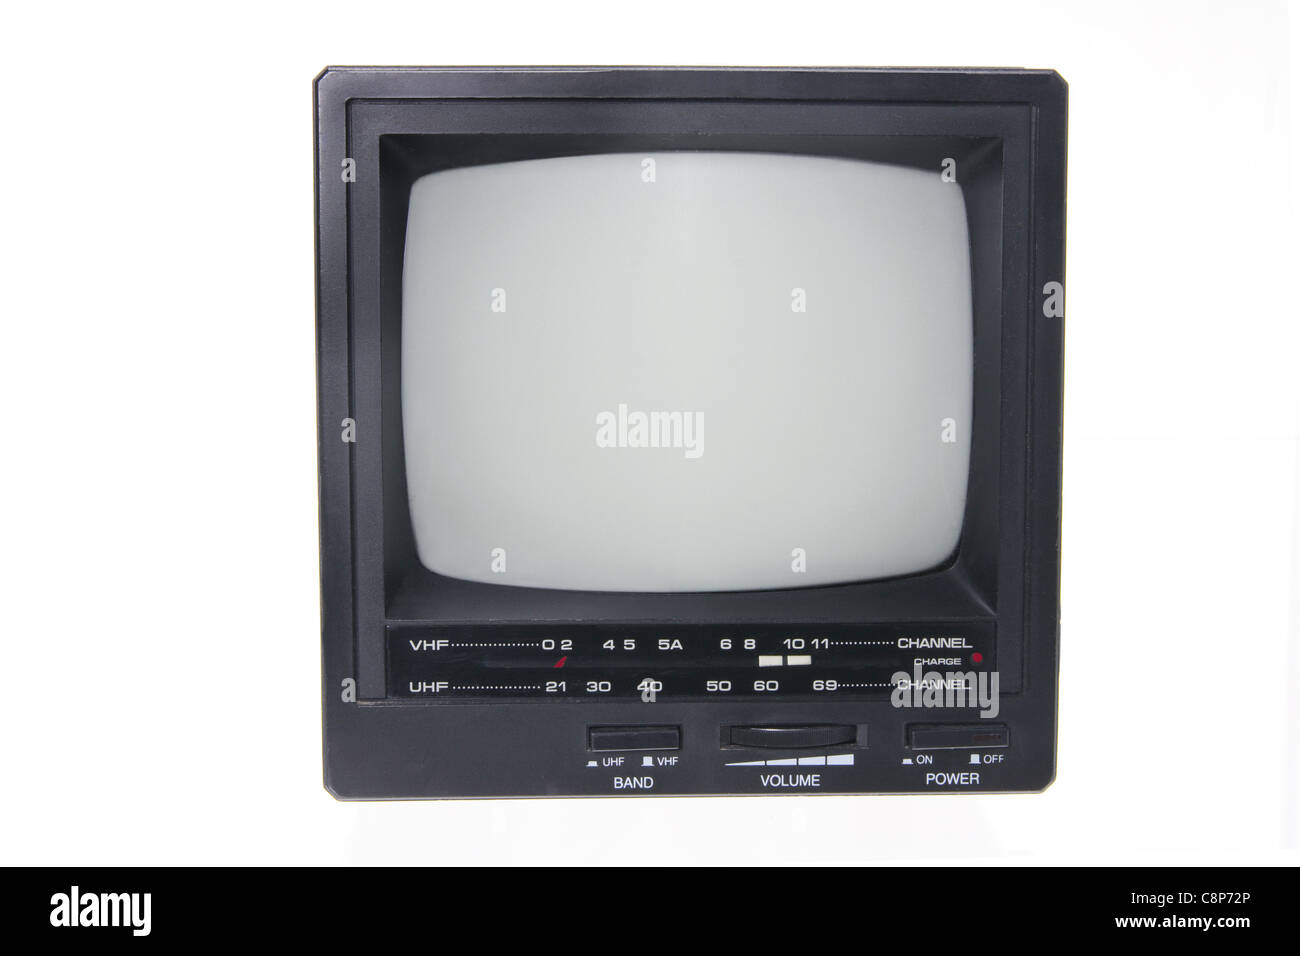 Portable TV - Stock Image